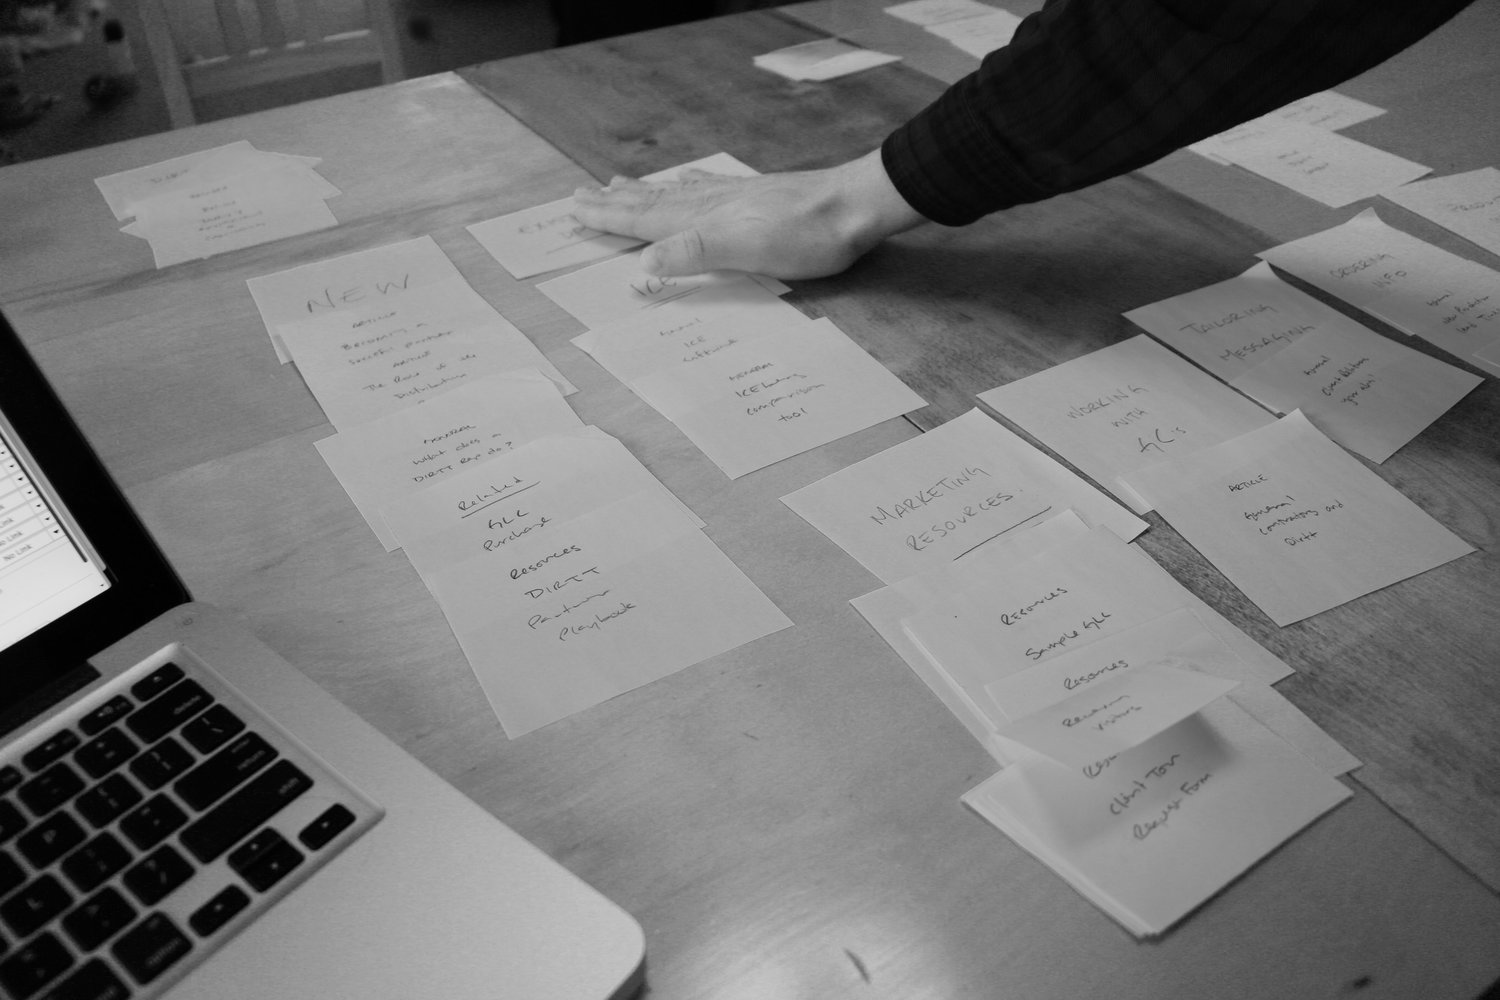 Hands on: Some analog card-sorting helps to clarify the user-experience.